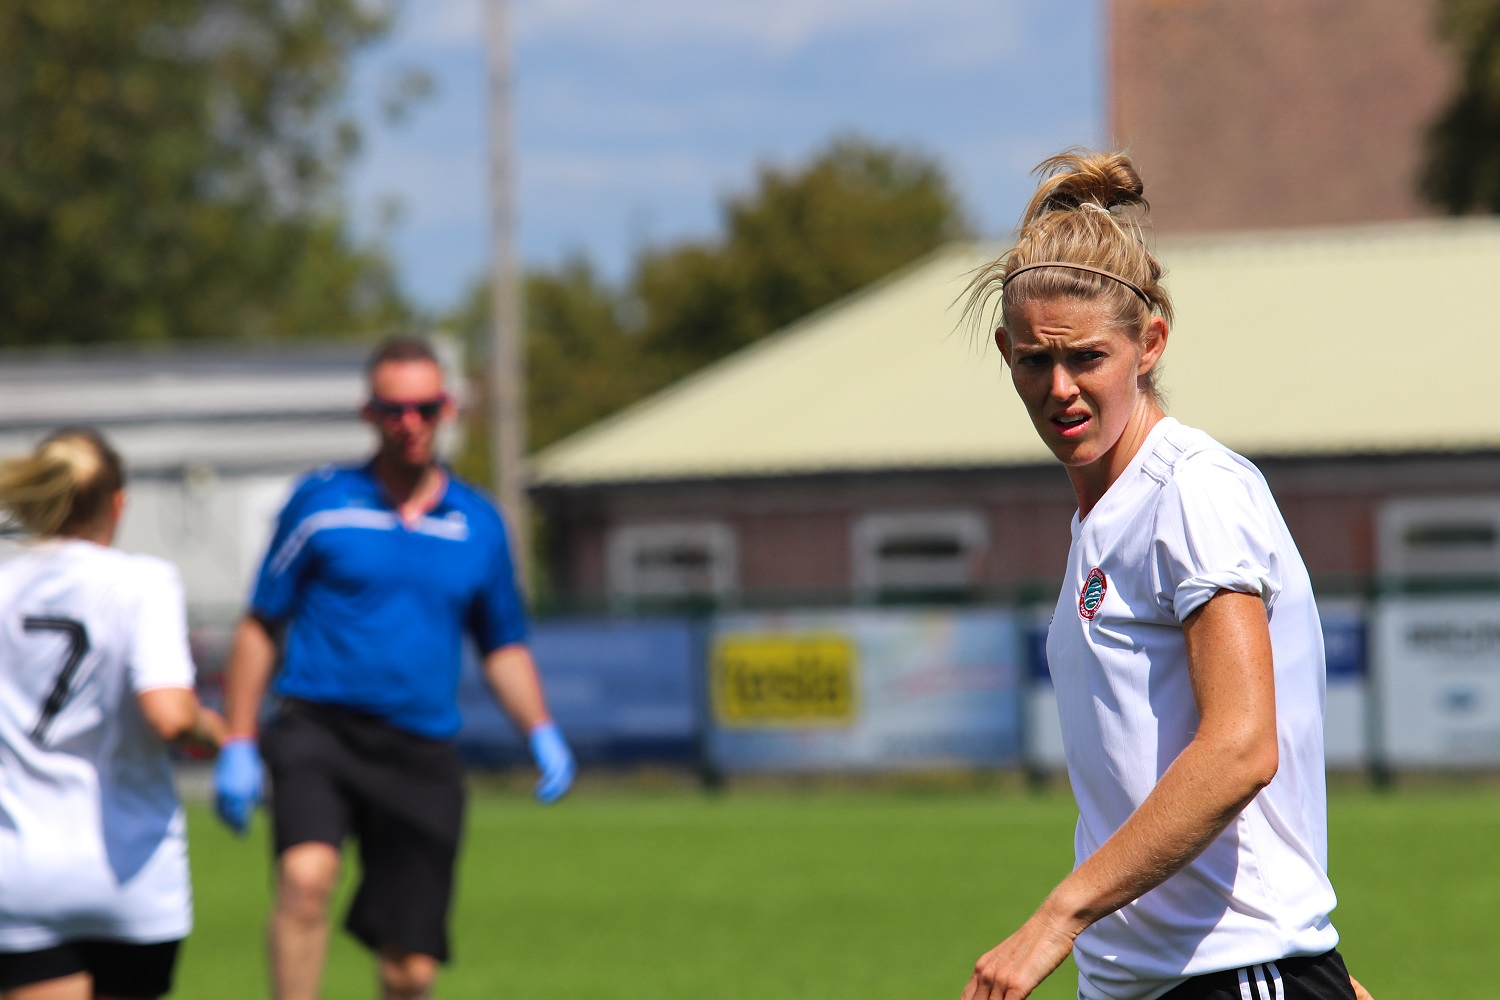 Read the full article - Hewlett looks ahead to Sunday's FA Cup tie against Steyning Town